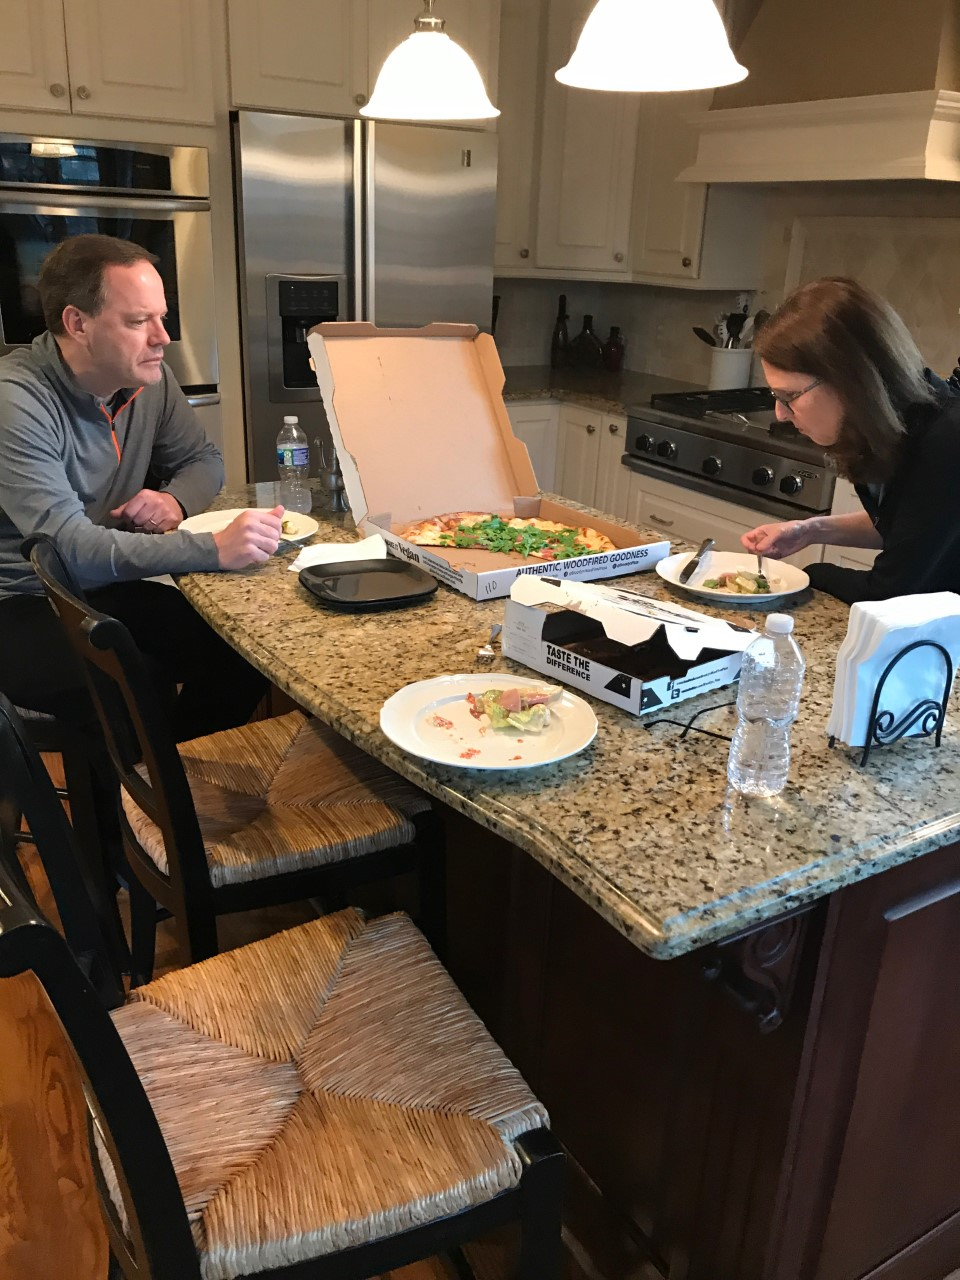 Family eats pizza at home